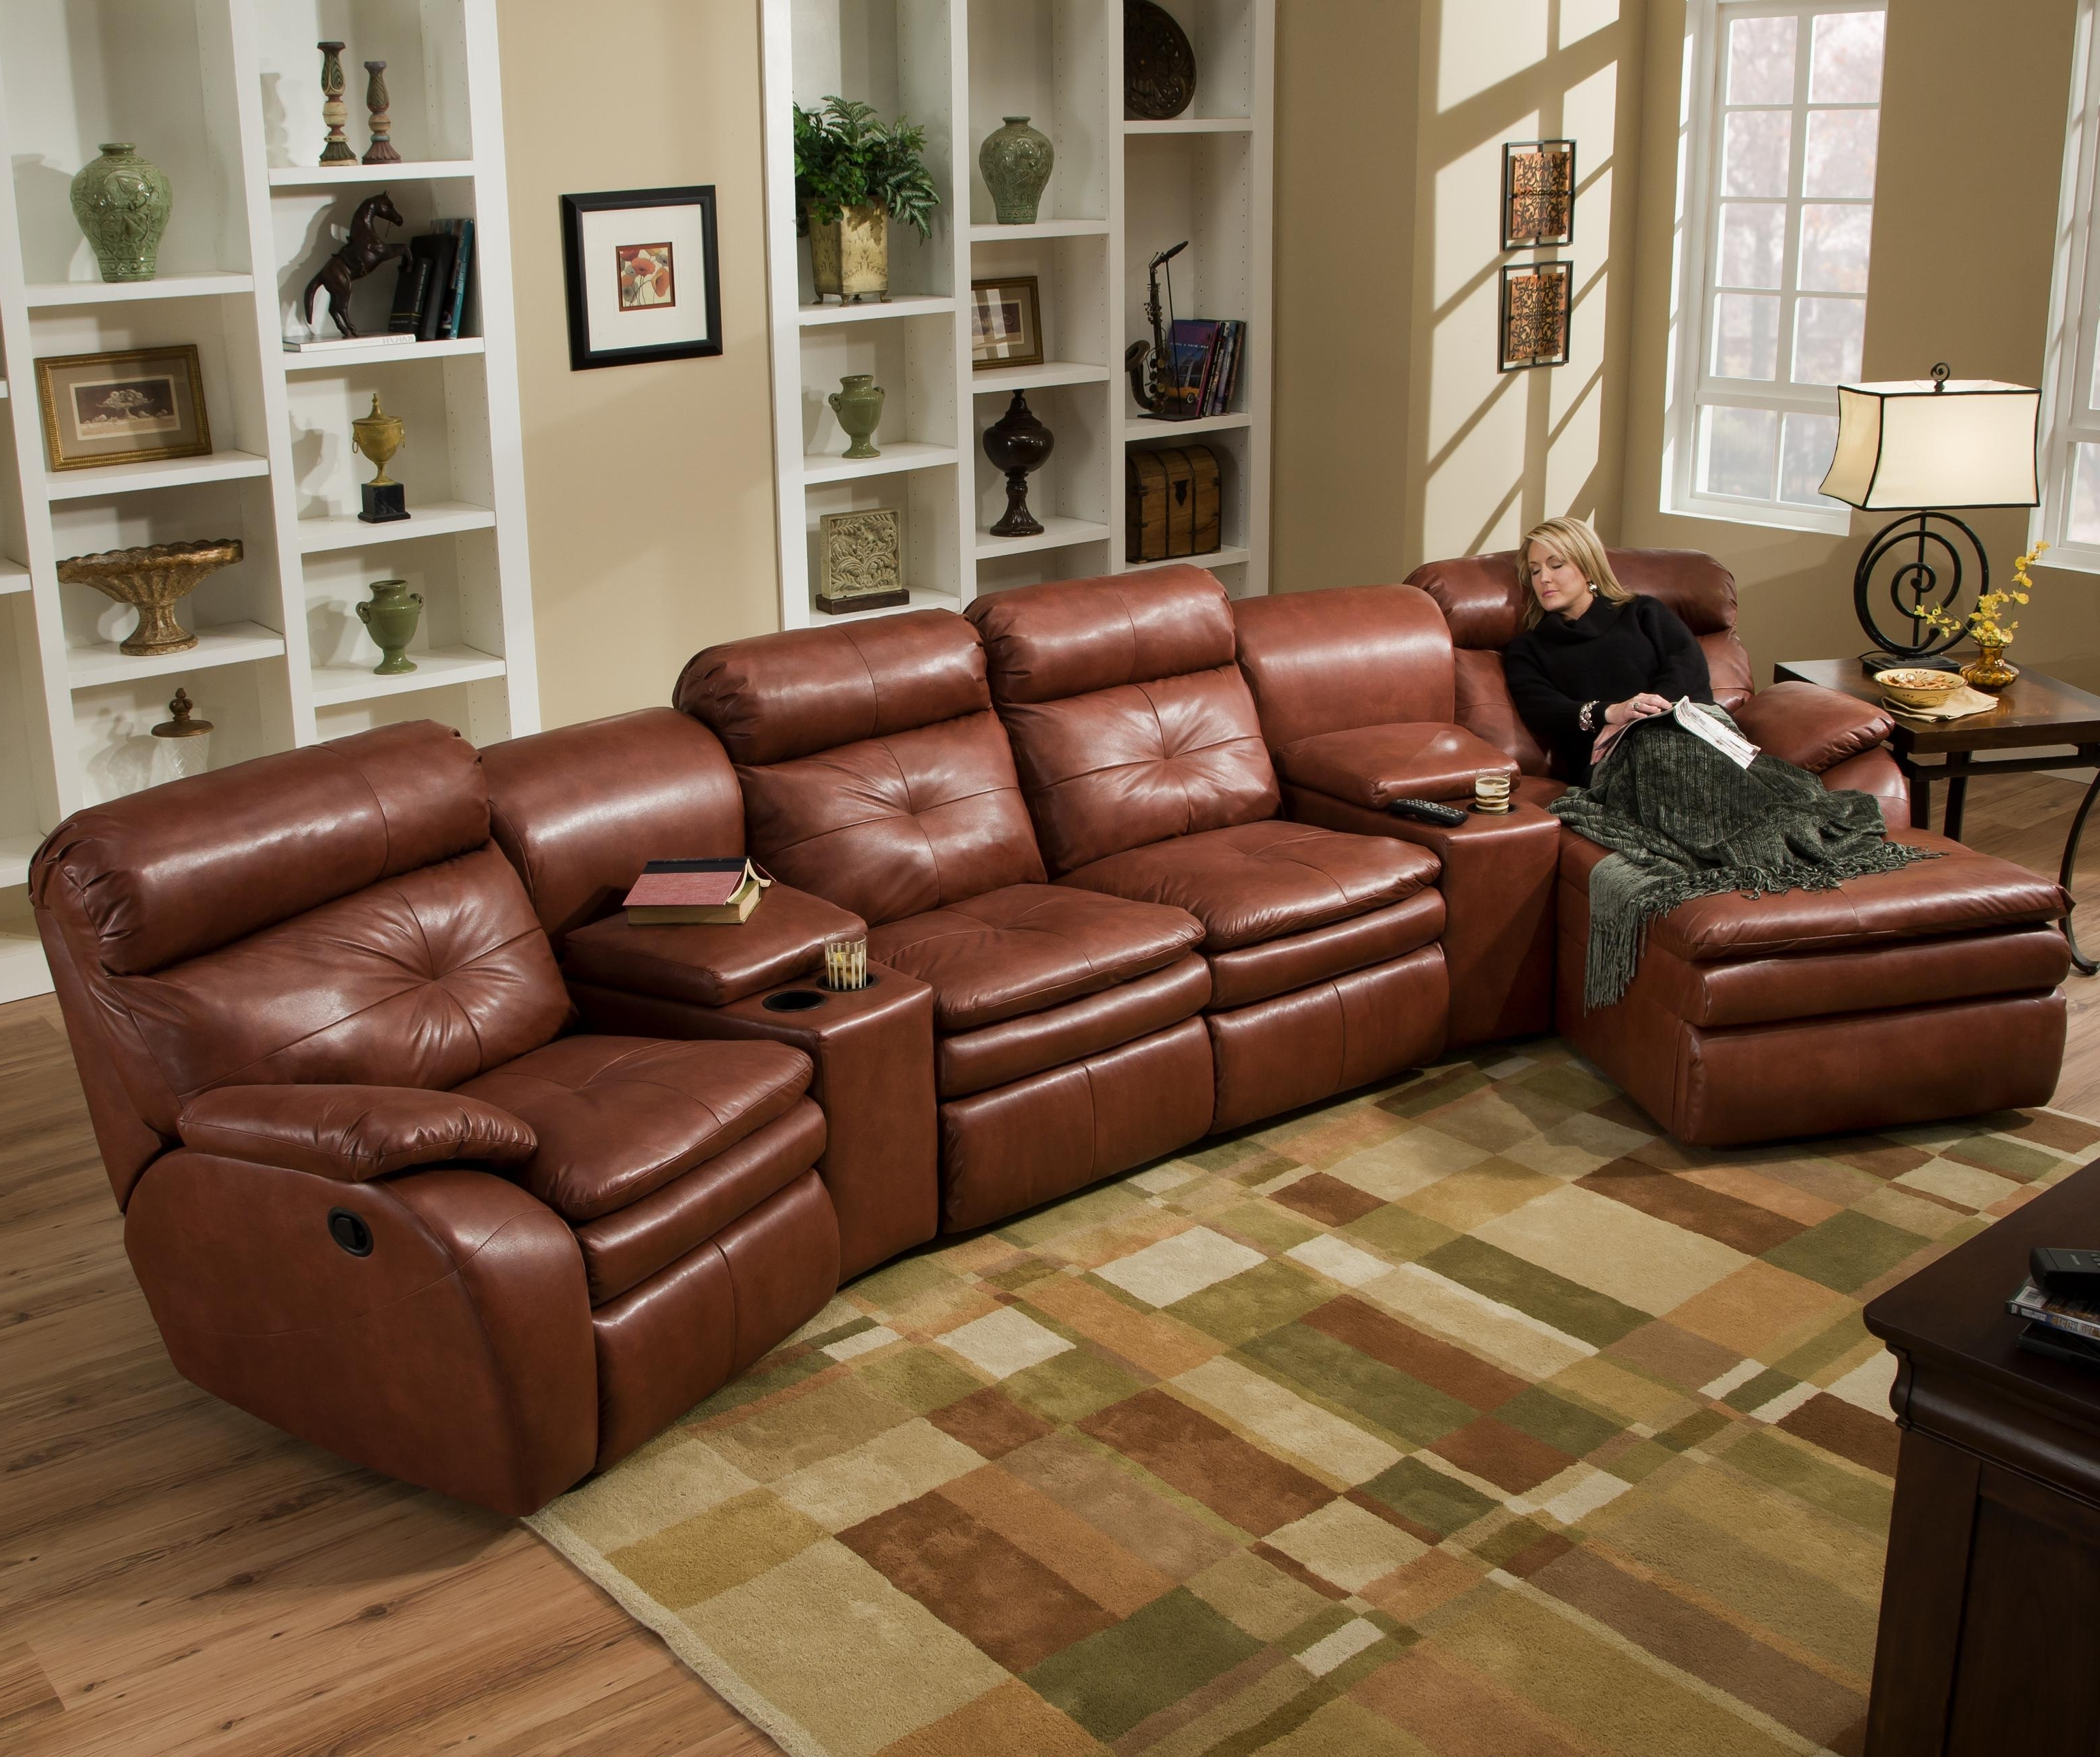 Sectional Sofas With Recliners And Chaise Inside Popular Ashley Furniture Sectional Couch Small Sectional Sofa Bed Small (View 5 of 15)